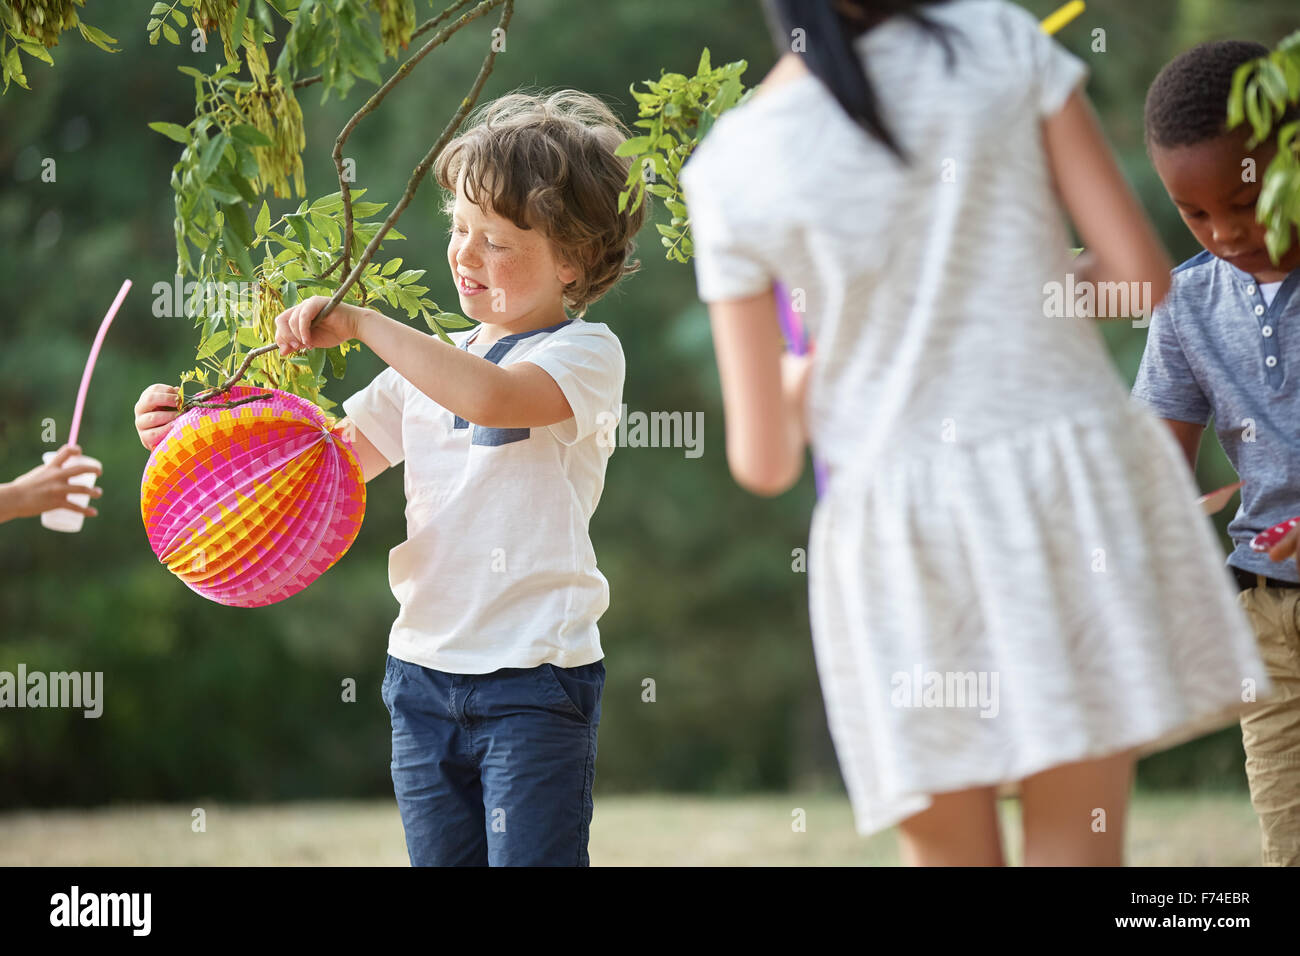 Group of kids at party having fun with lampions - Stock Image